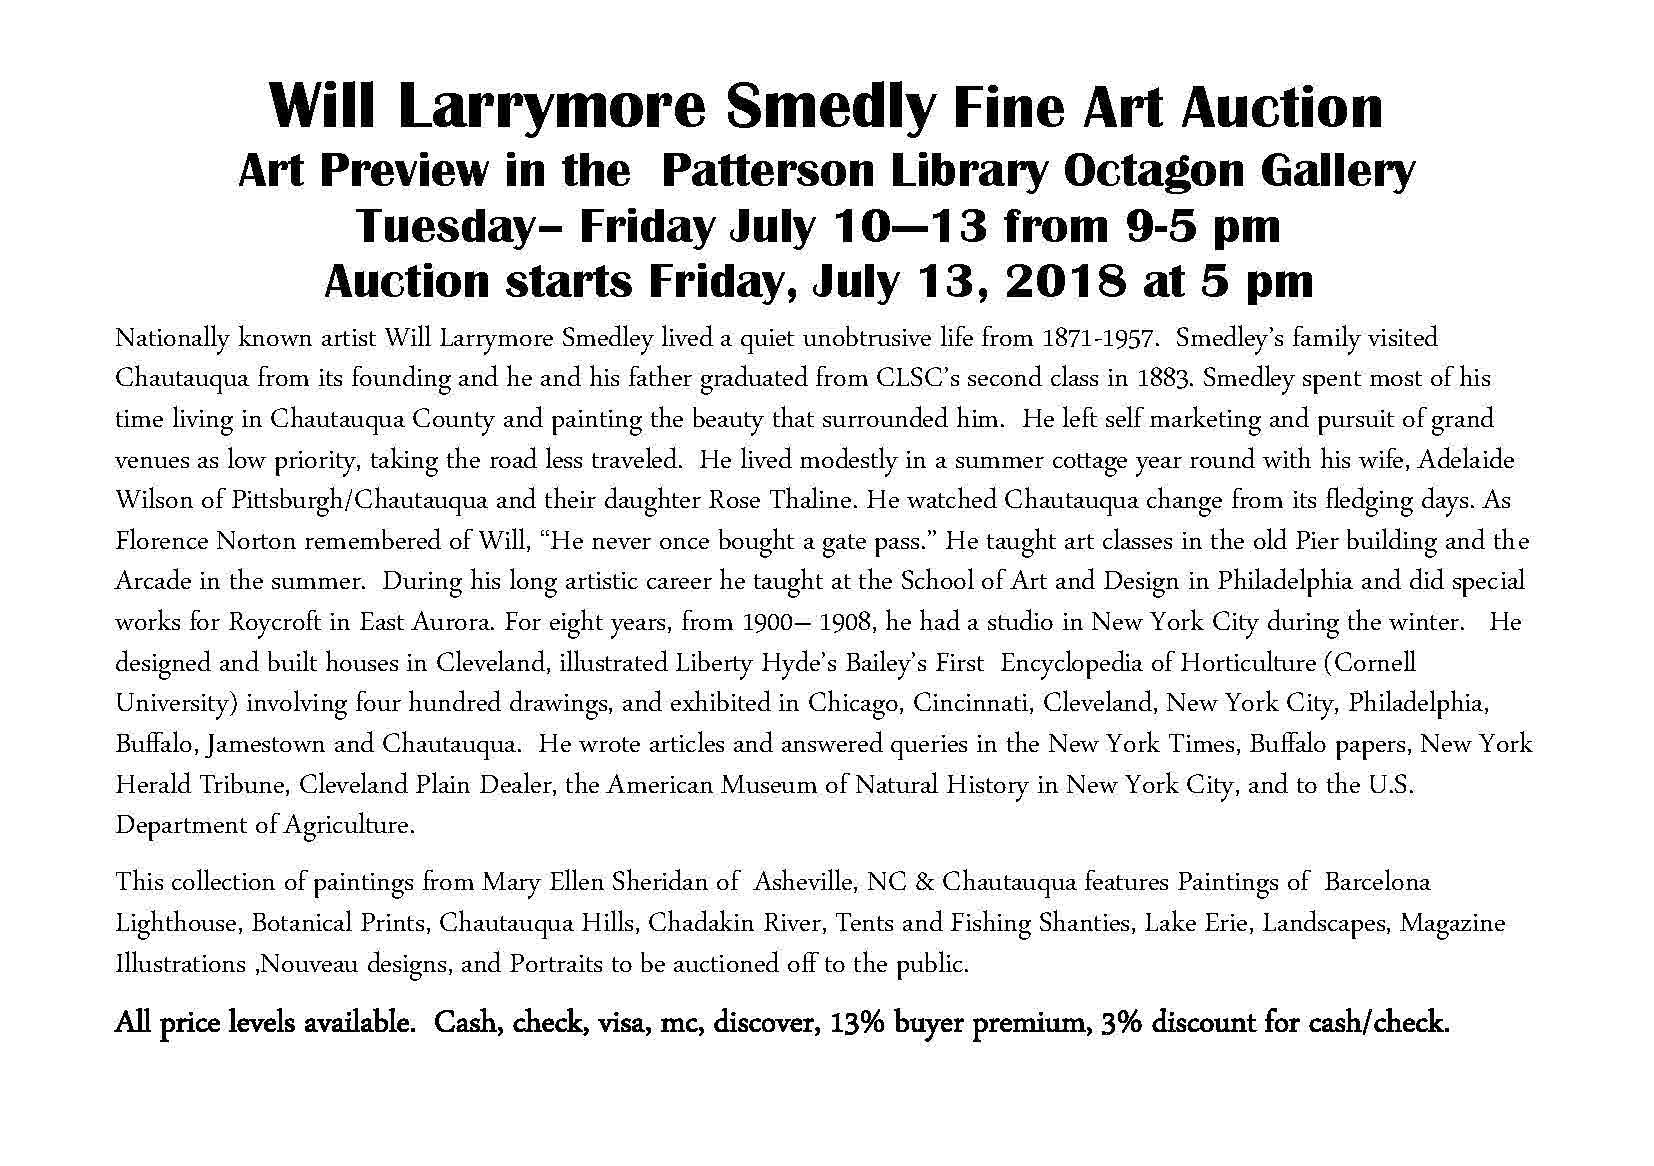 Will Larrymore Smedley Art Auction